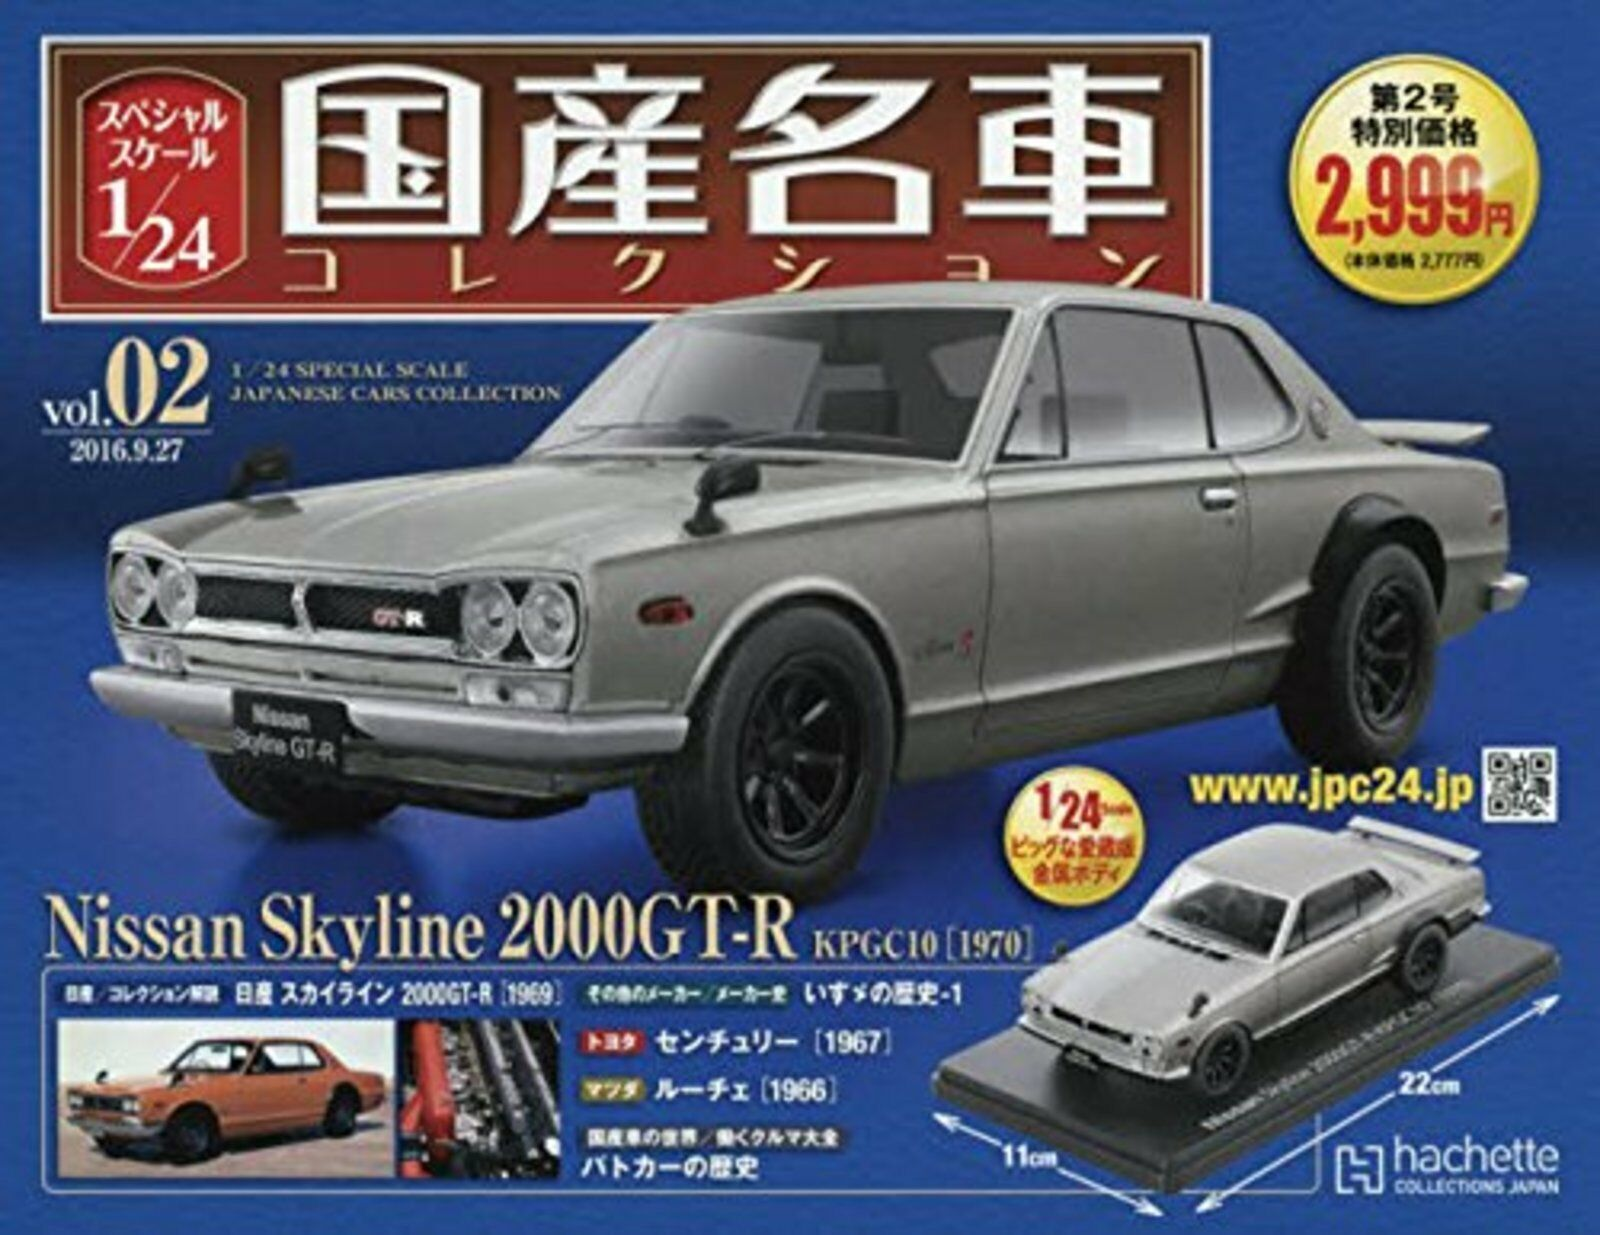 1 24 Special Scale Japanese Cars Collection Vol.02 Nissan Nissan Nissan Skyline 2000GT-R F S 3ace71